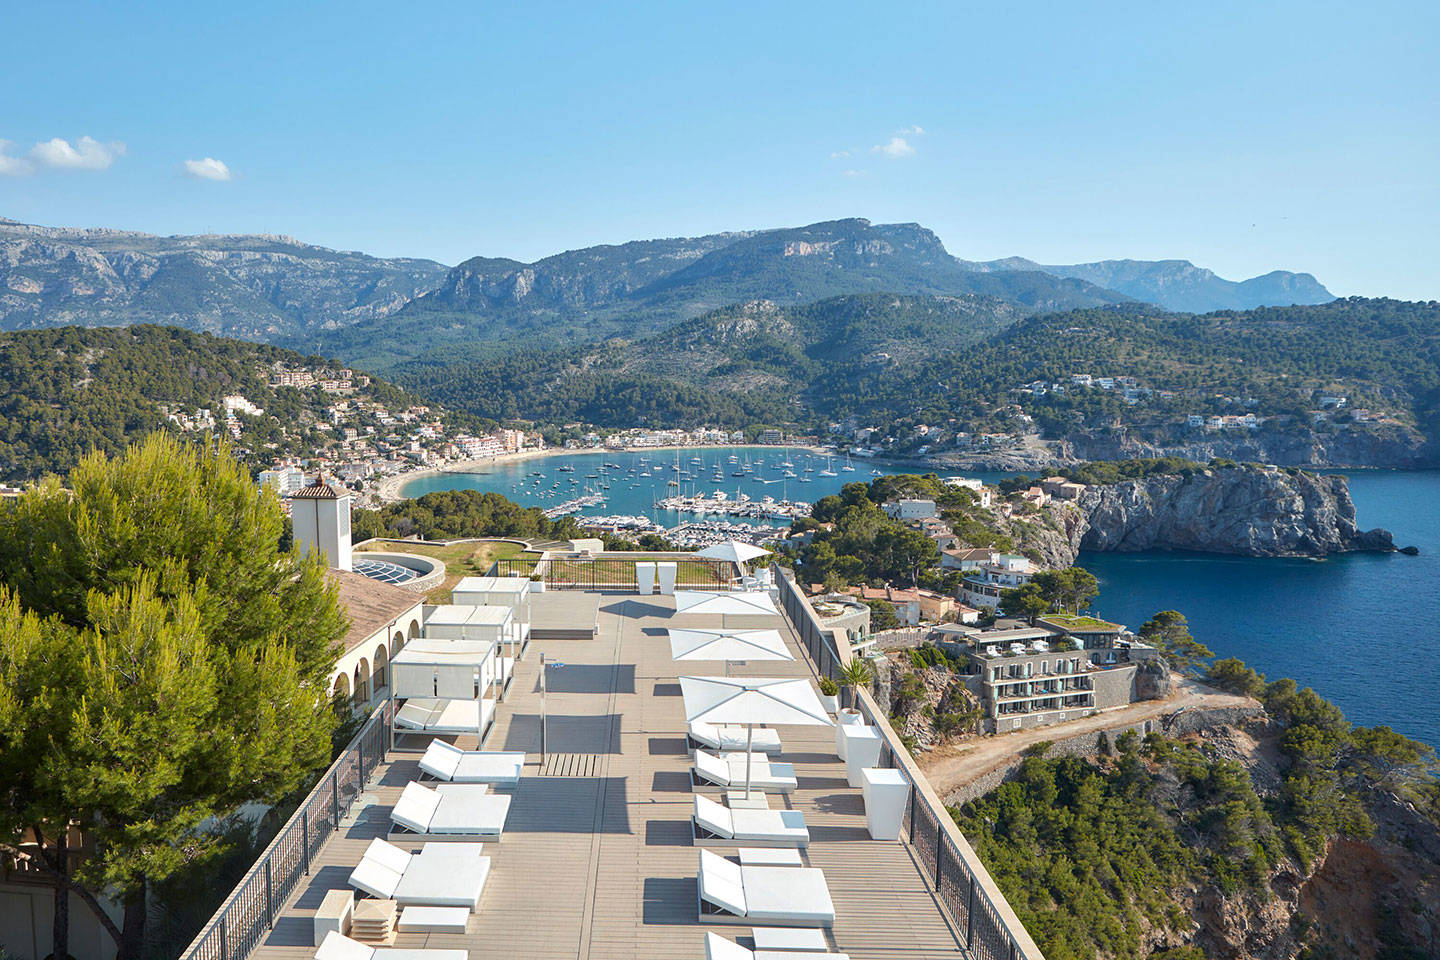 Jumeirah Port Soller Hotel & Spa Terrace overlooking views of mountain and sea